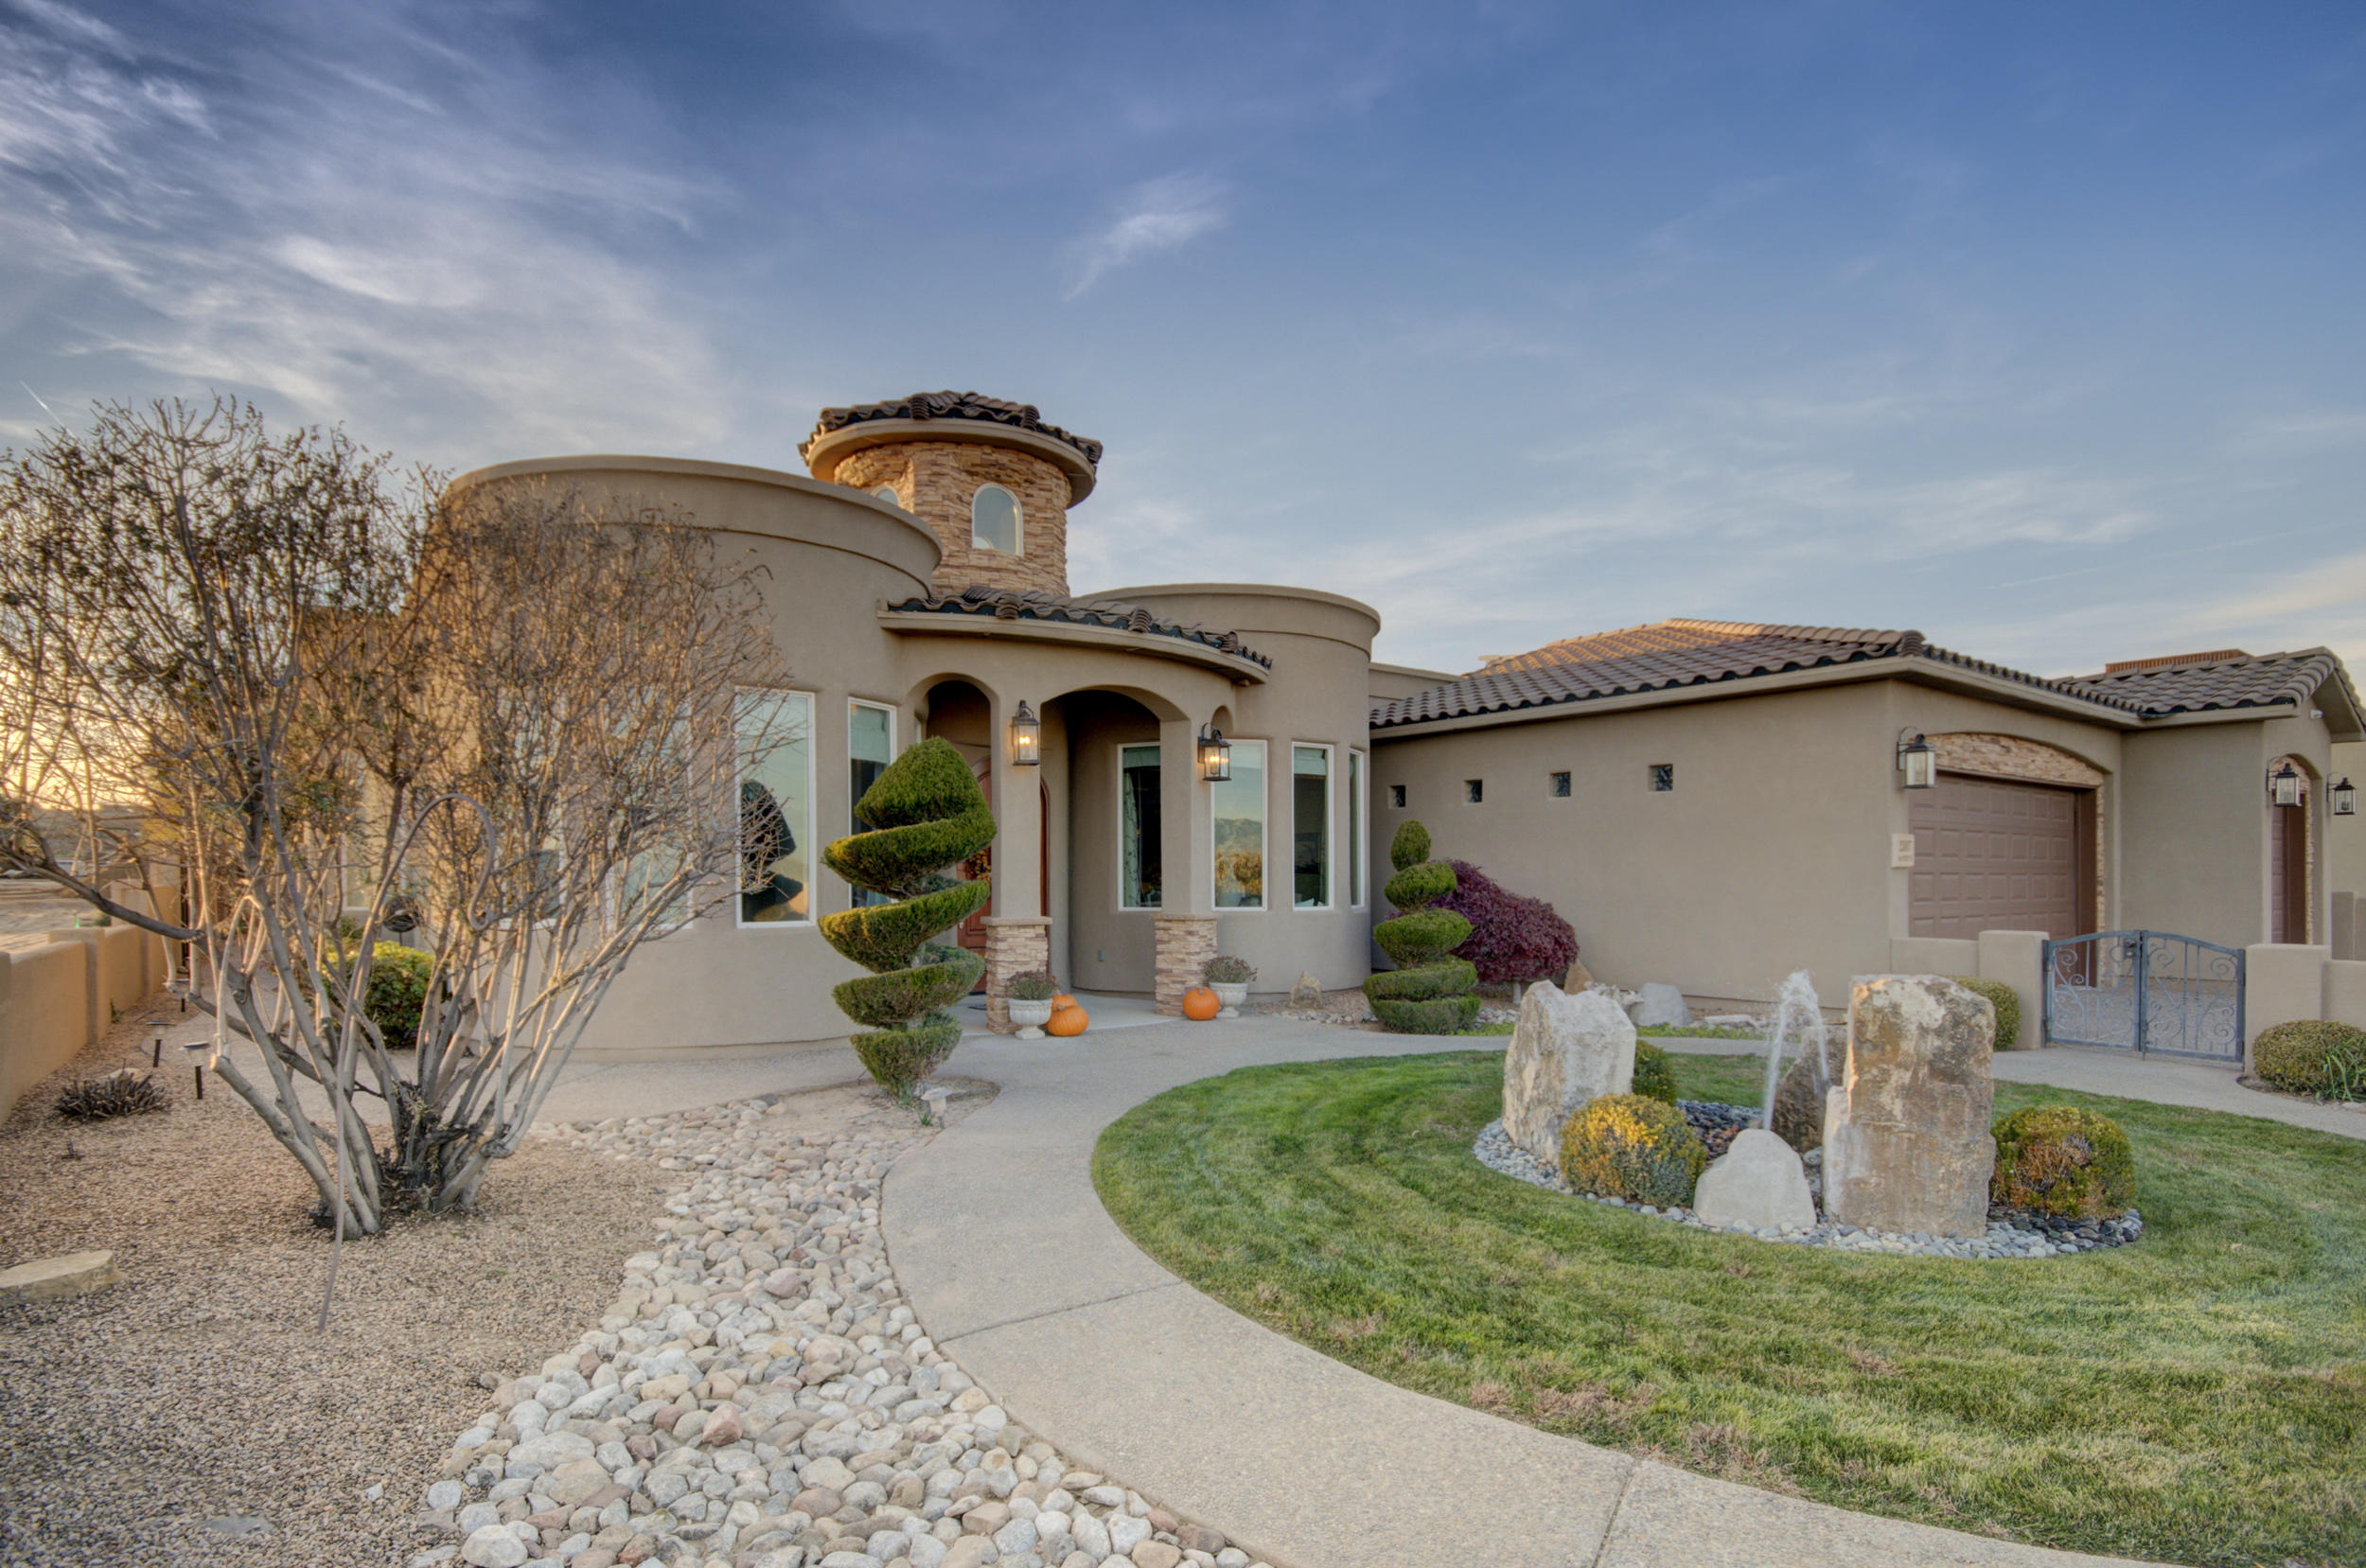 2307 SE 18Th Street, one of homes for sale in Rio Rancho